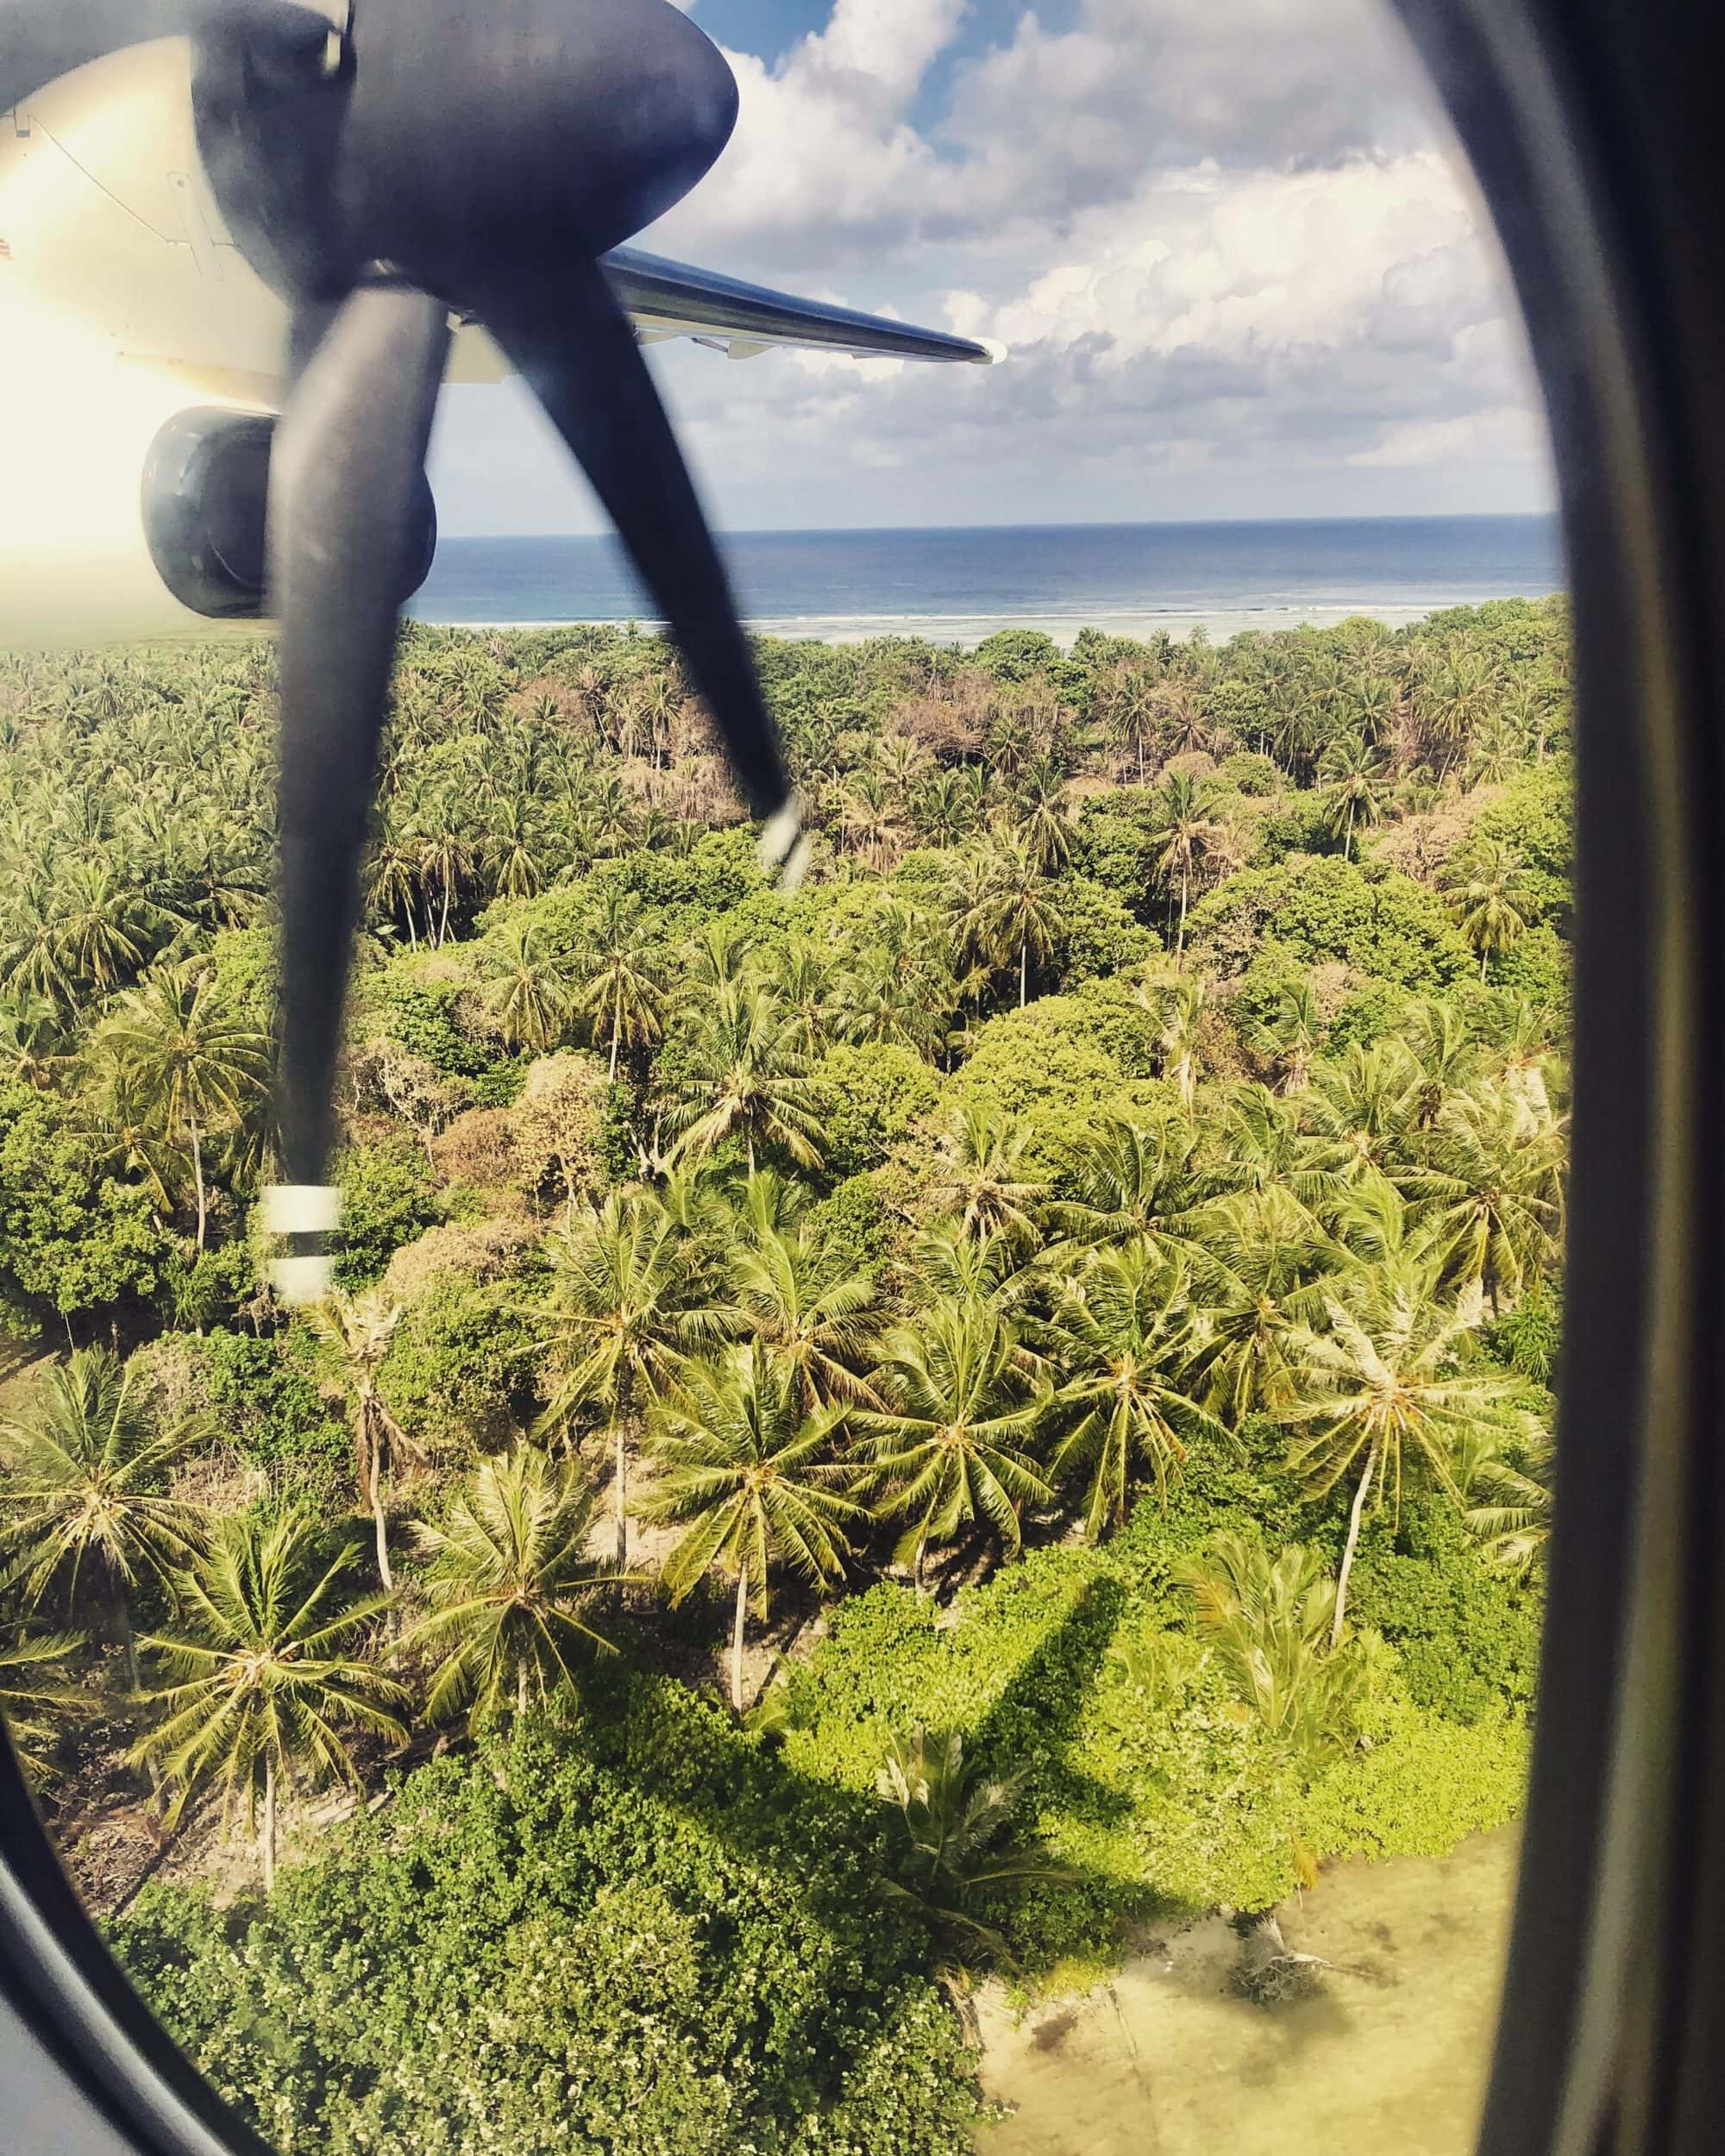 Incredible views as you transfer around the Maldives